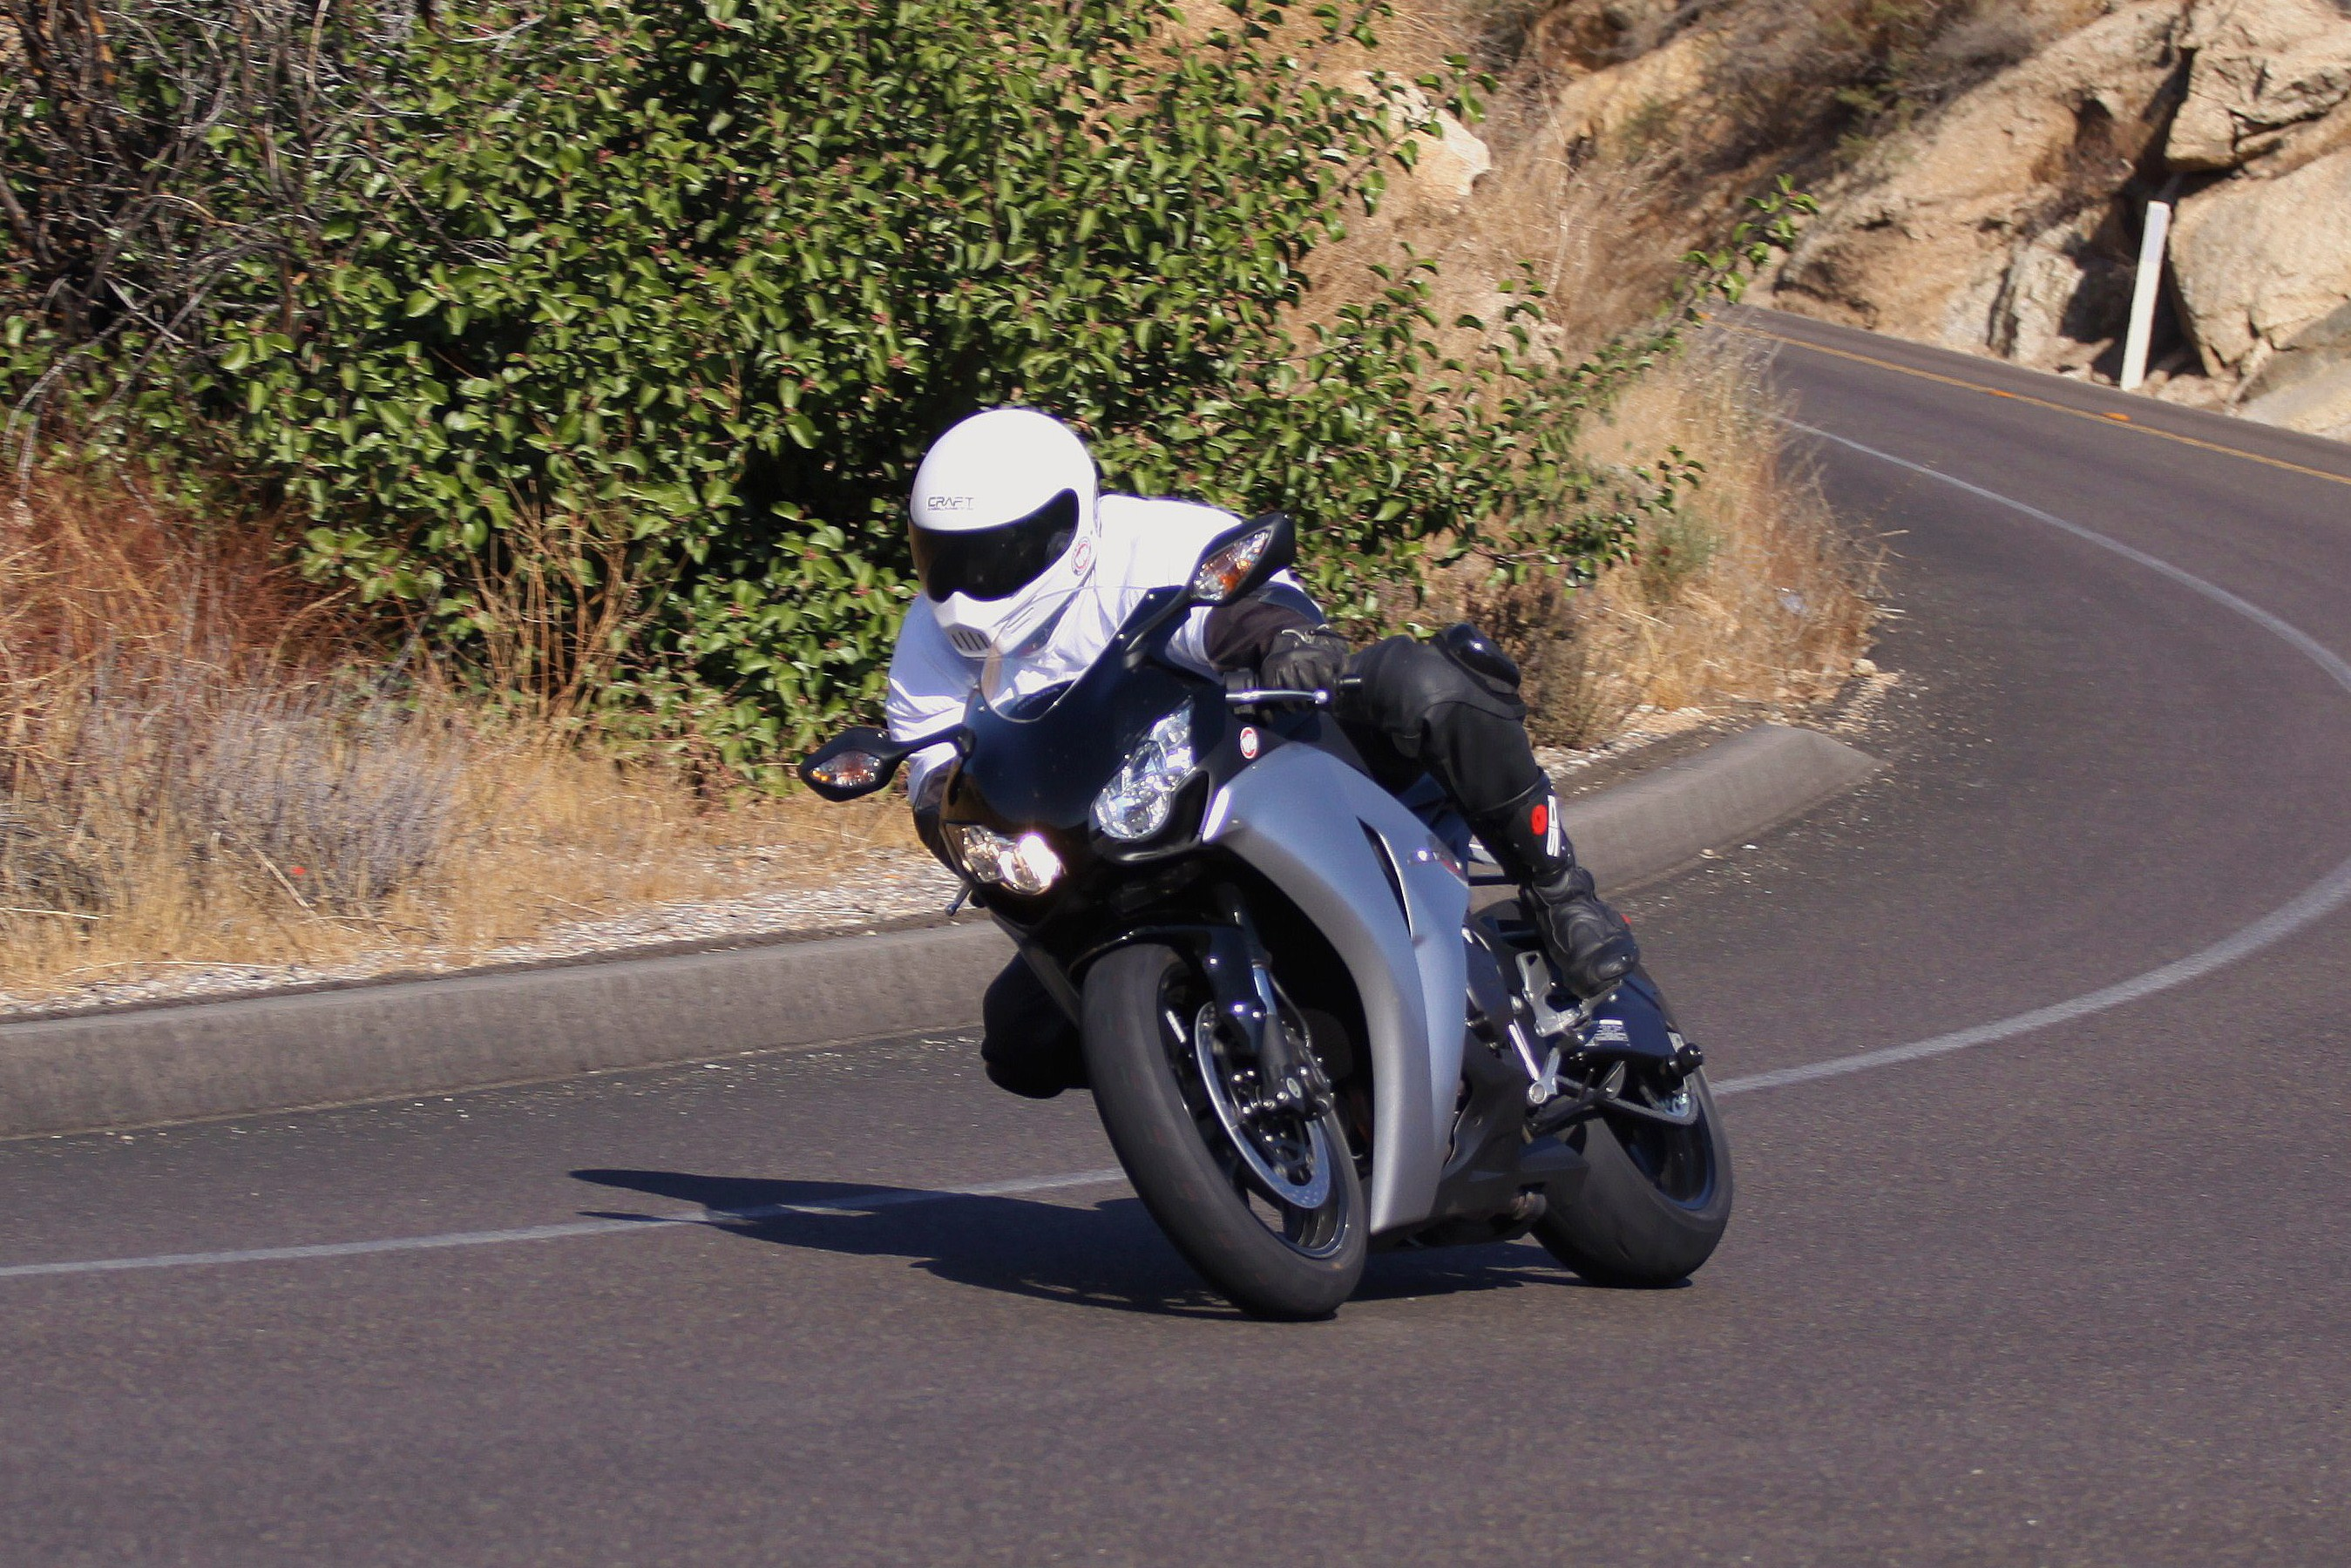 Los Angeles Motorcycle Accident Lawyer Farhad Hamdam Encourages Riders To Take Necessary Precautions